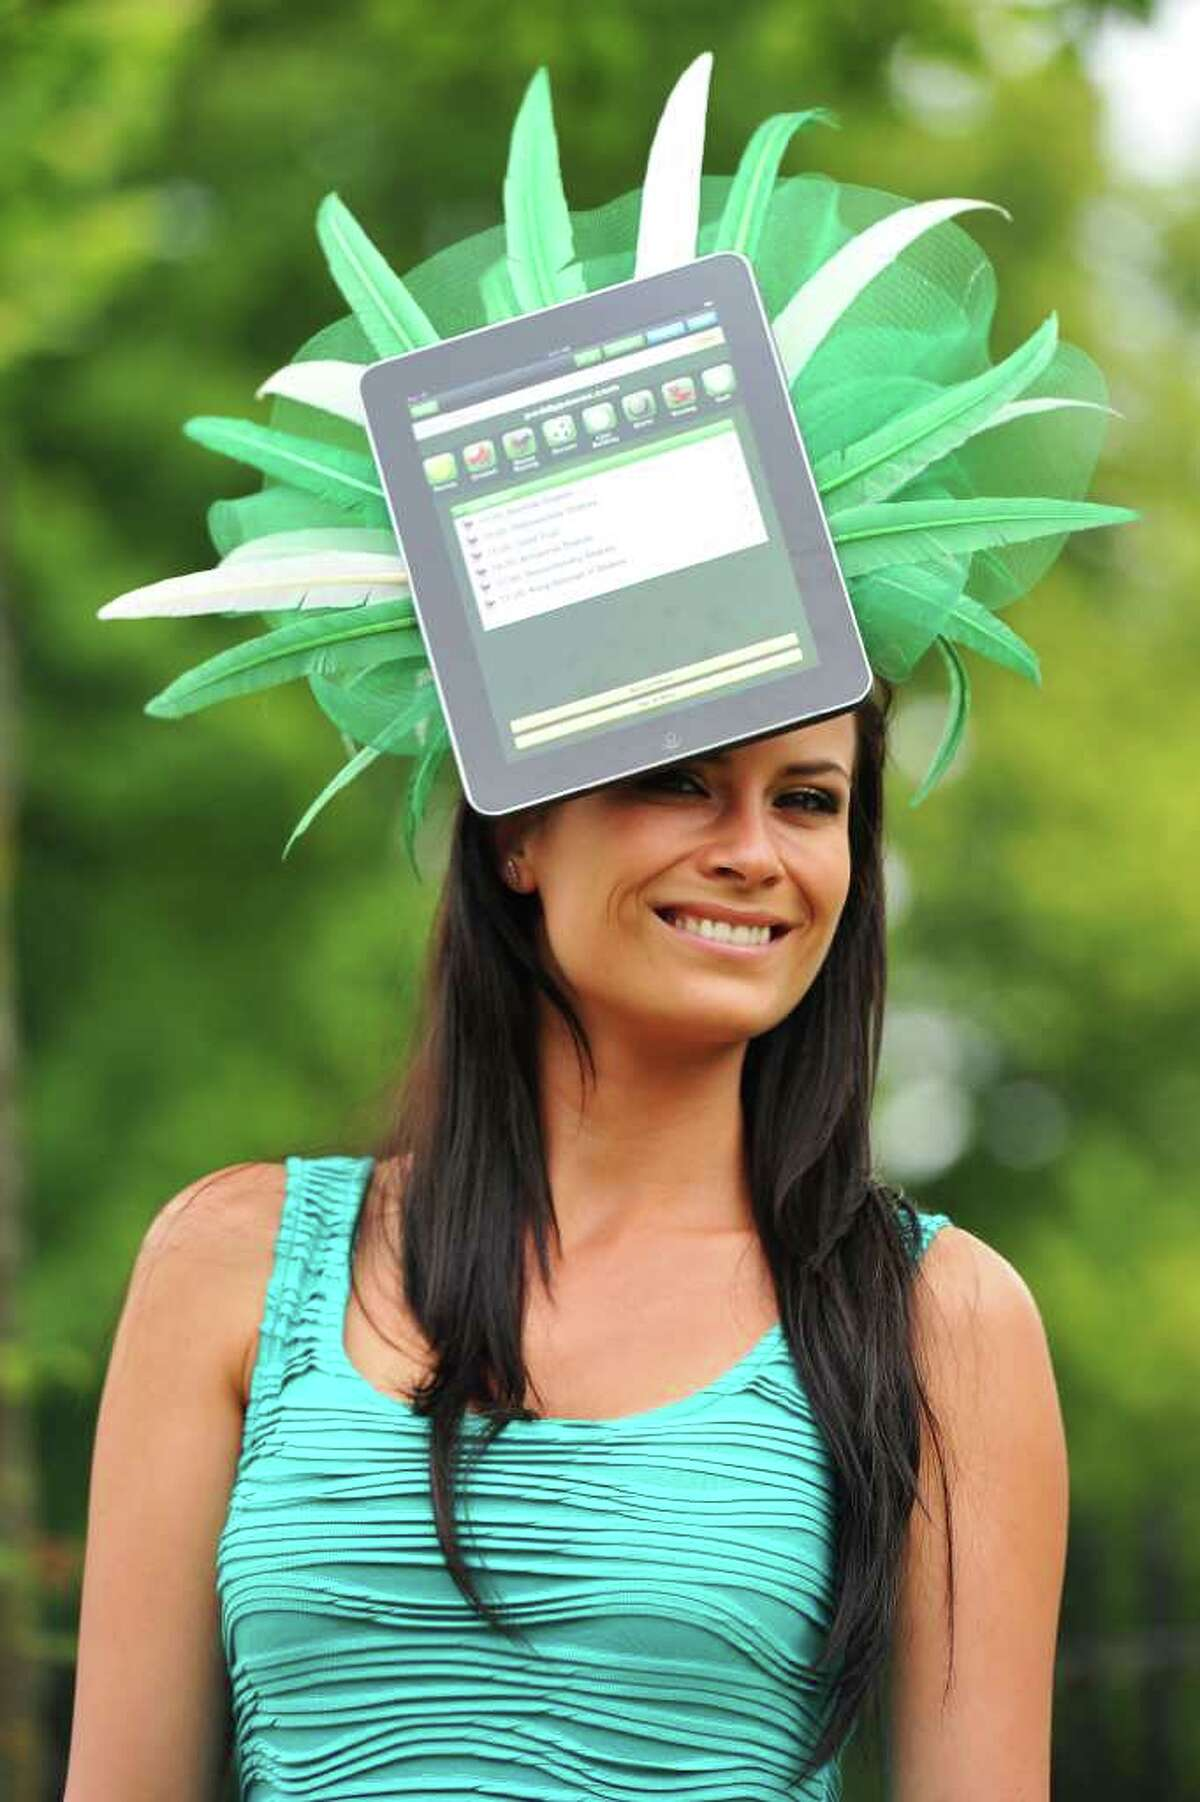 A race-goer wears a hat with an iPad design on the second day of the annual Royal Ascot horse racing event near Windsor, west of London, in Berkshire, on Wednesday. The five-day meeting is one of the highlights of the global horse racing calendar. Horse racing has been held at the famous Berkshire course since 1711 and tradition is a hallmark of the meeting. Top hats and tails remain compulsory in parts of the course while a daily procession of horse-drawn carriages brings the Queen to the course. AFP PHOTO/Carl de Souza